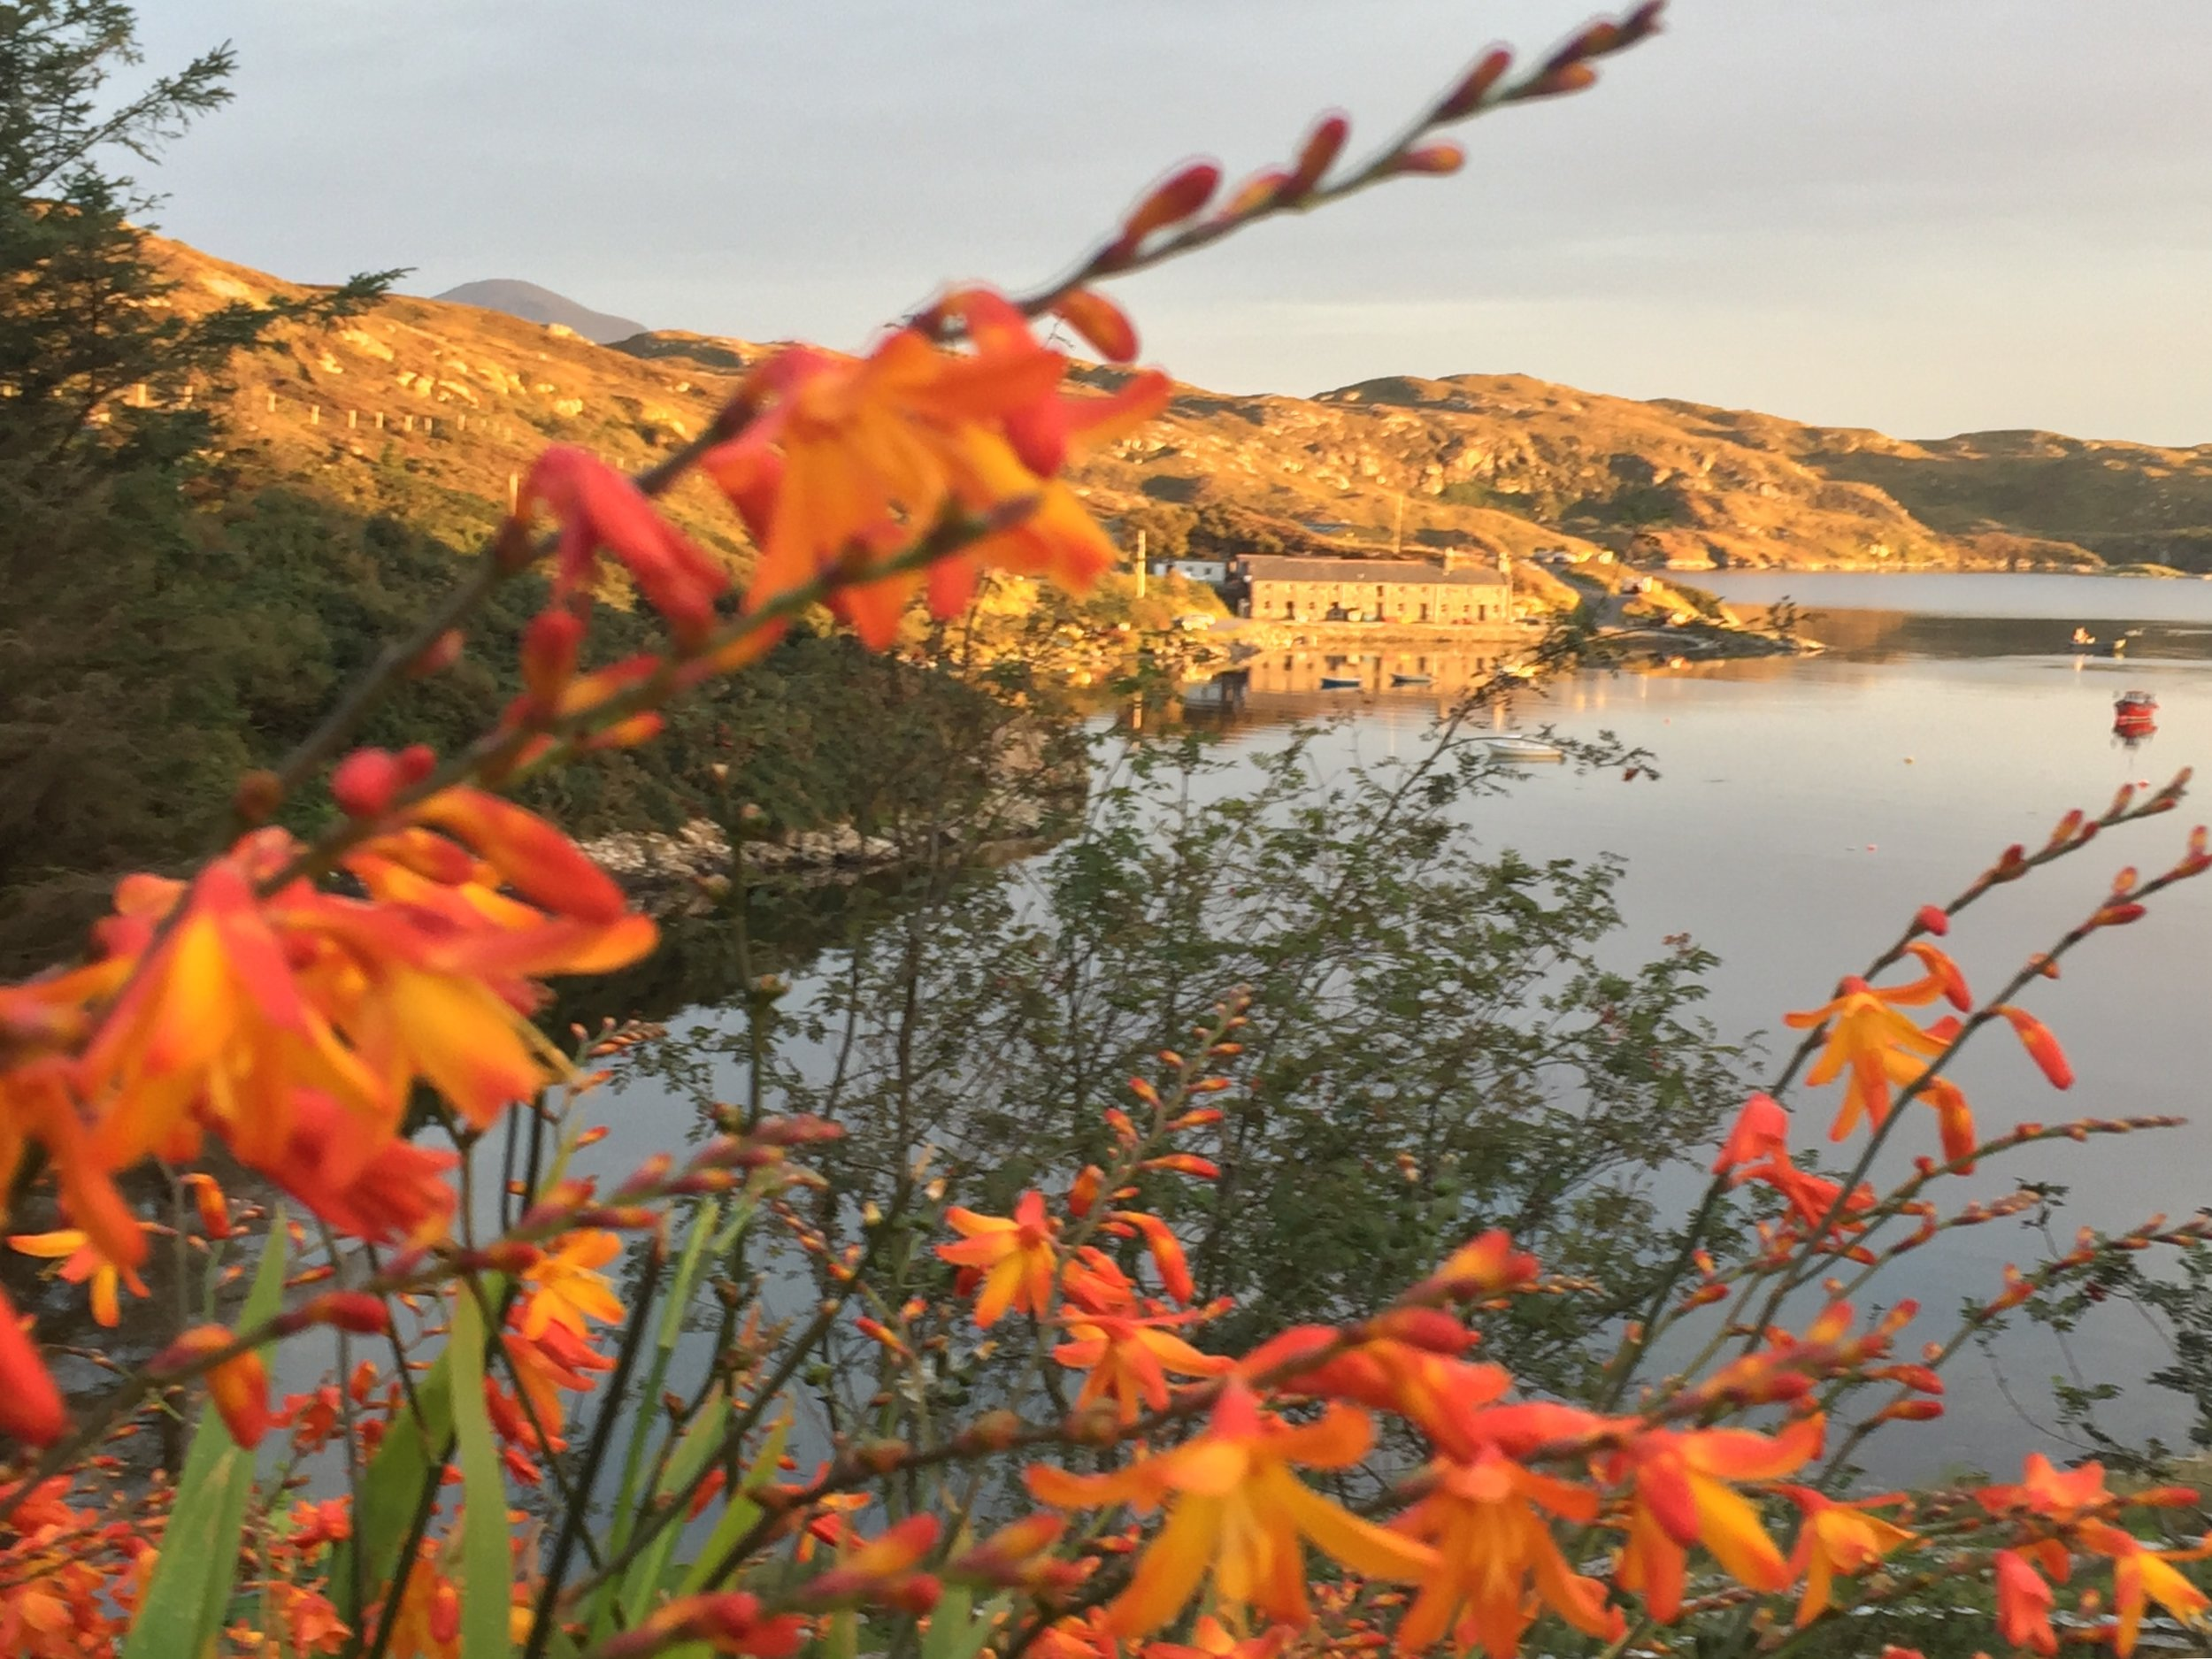 Autumn flowers overlooking the bay.